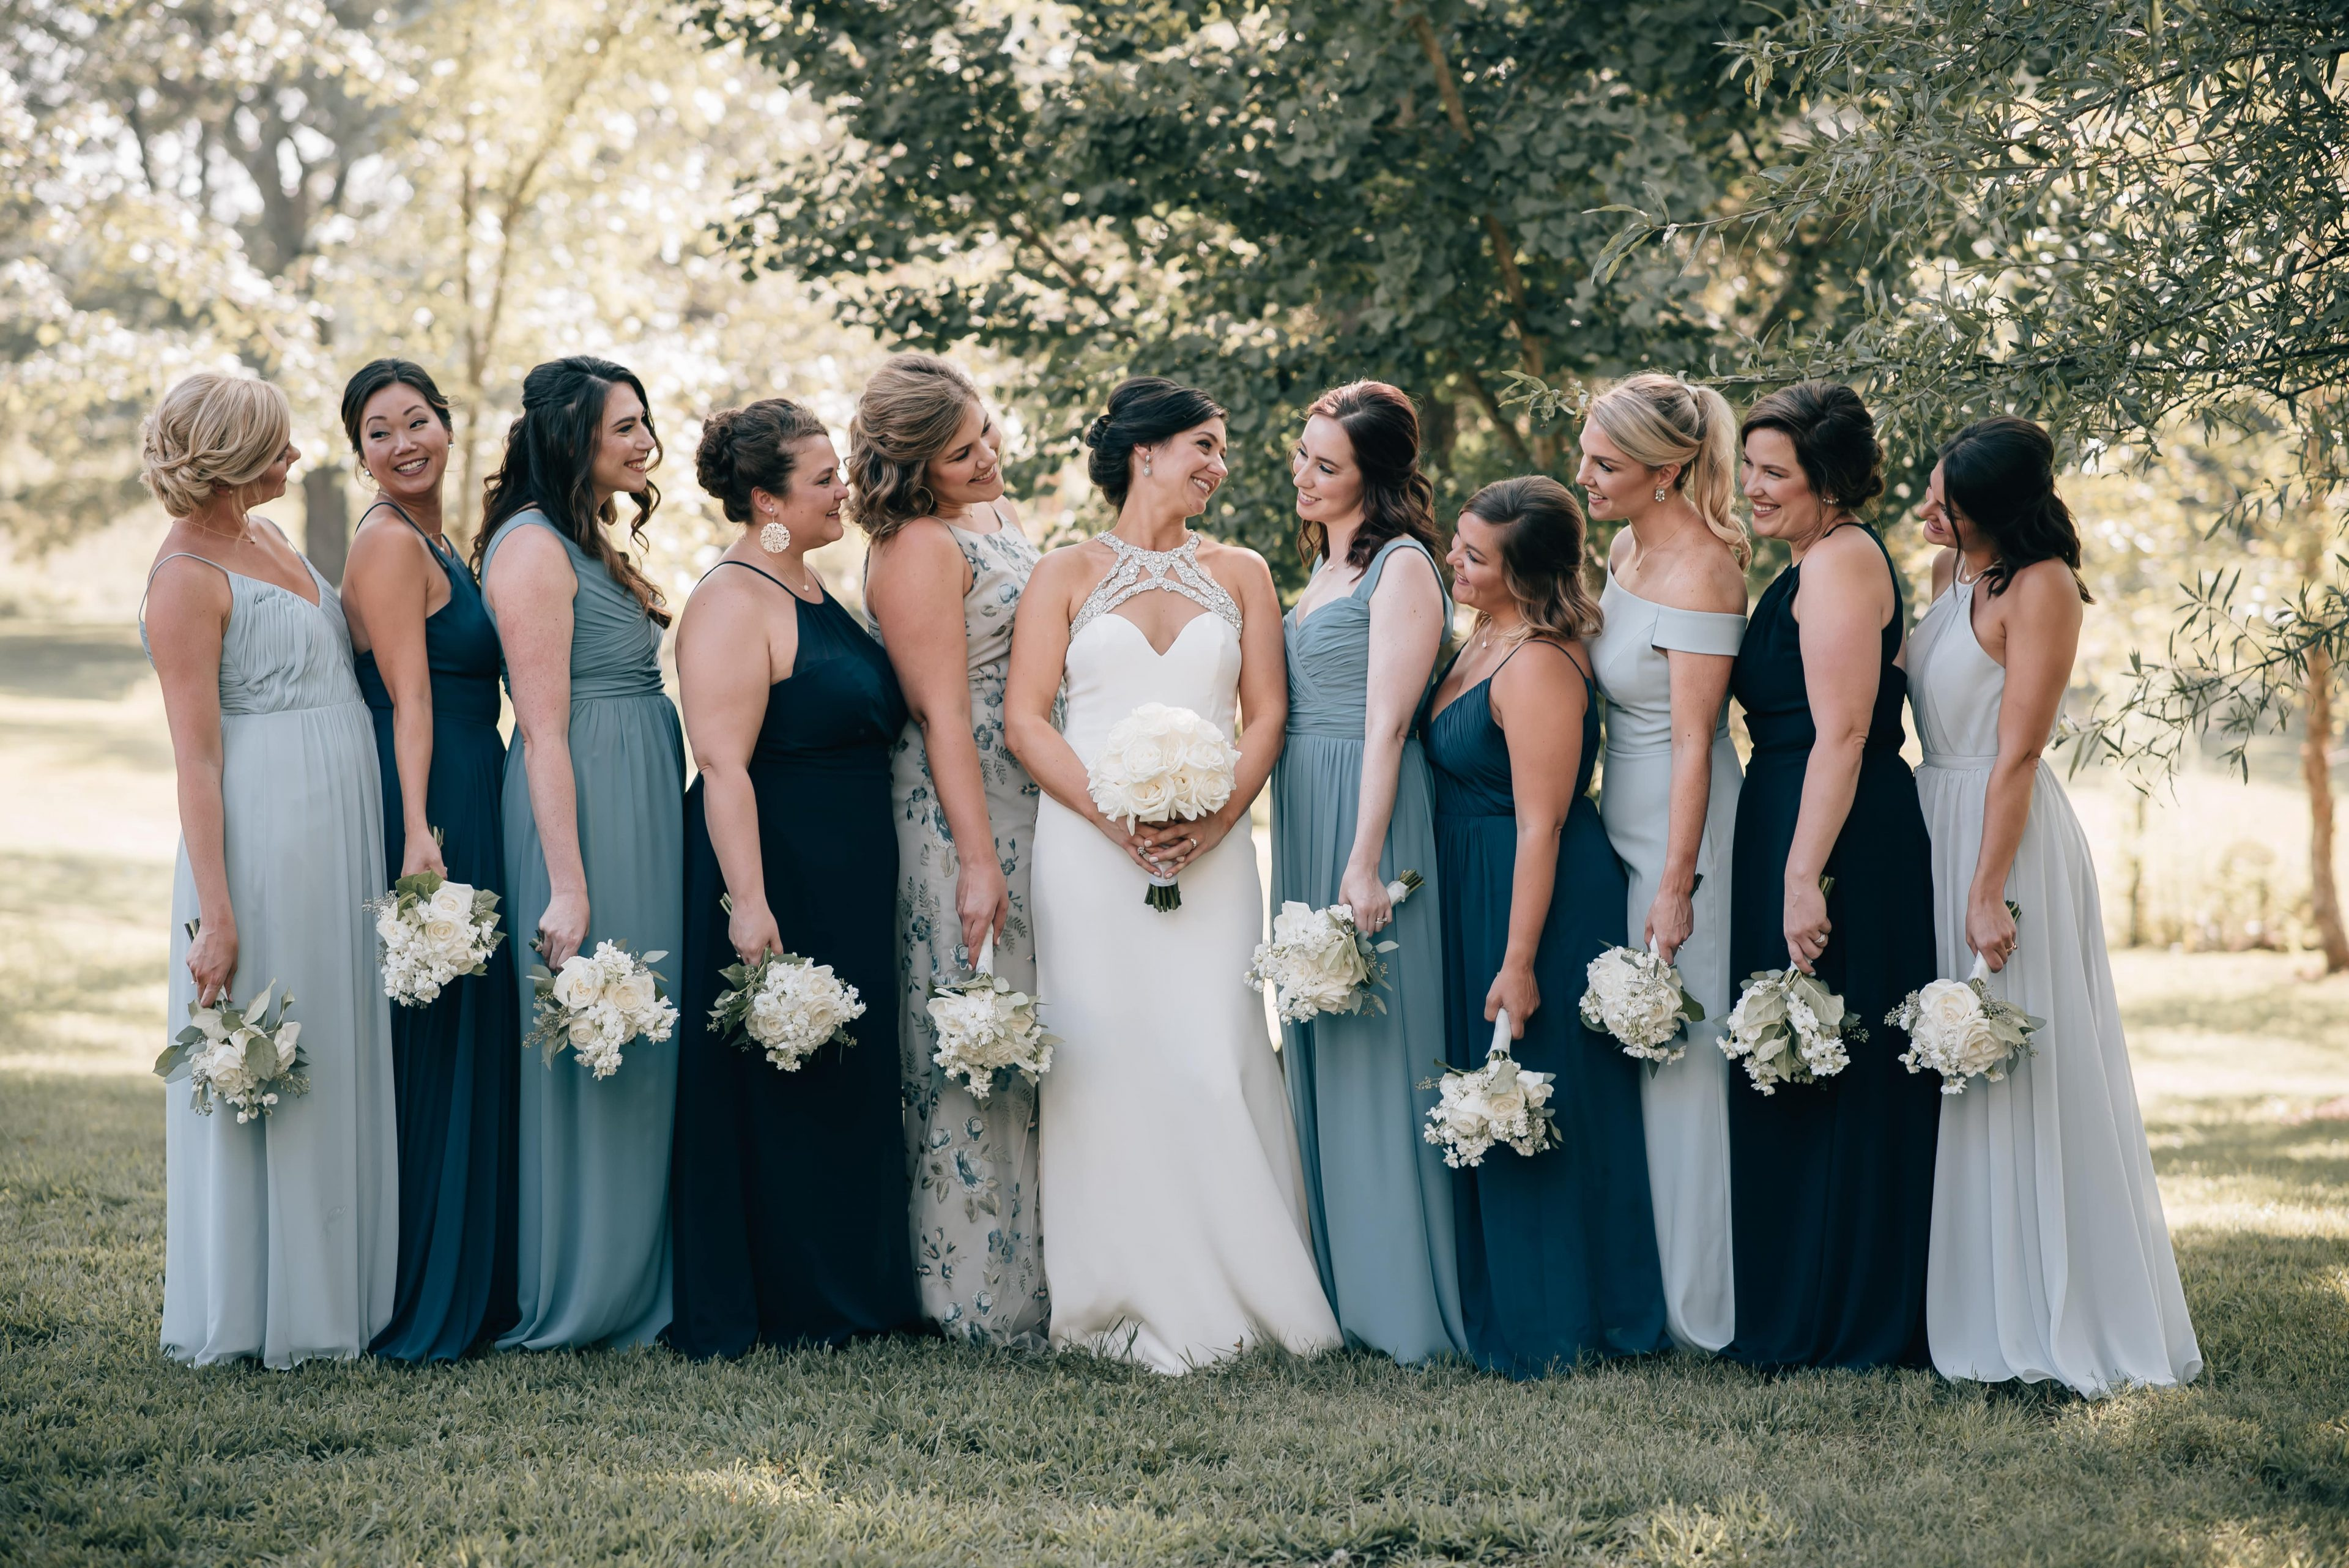 Bridesmaids were a variety of blue dresses from Brideside and pose with the bride wearing a simple white gown from Hayden Olivia Bridal